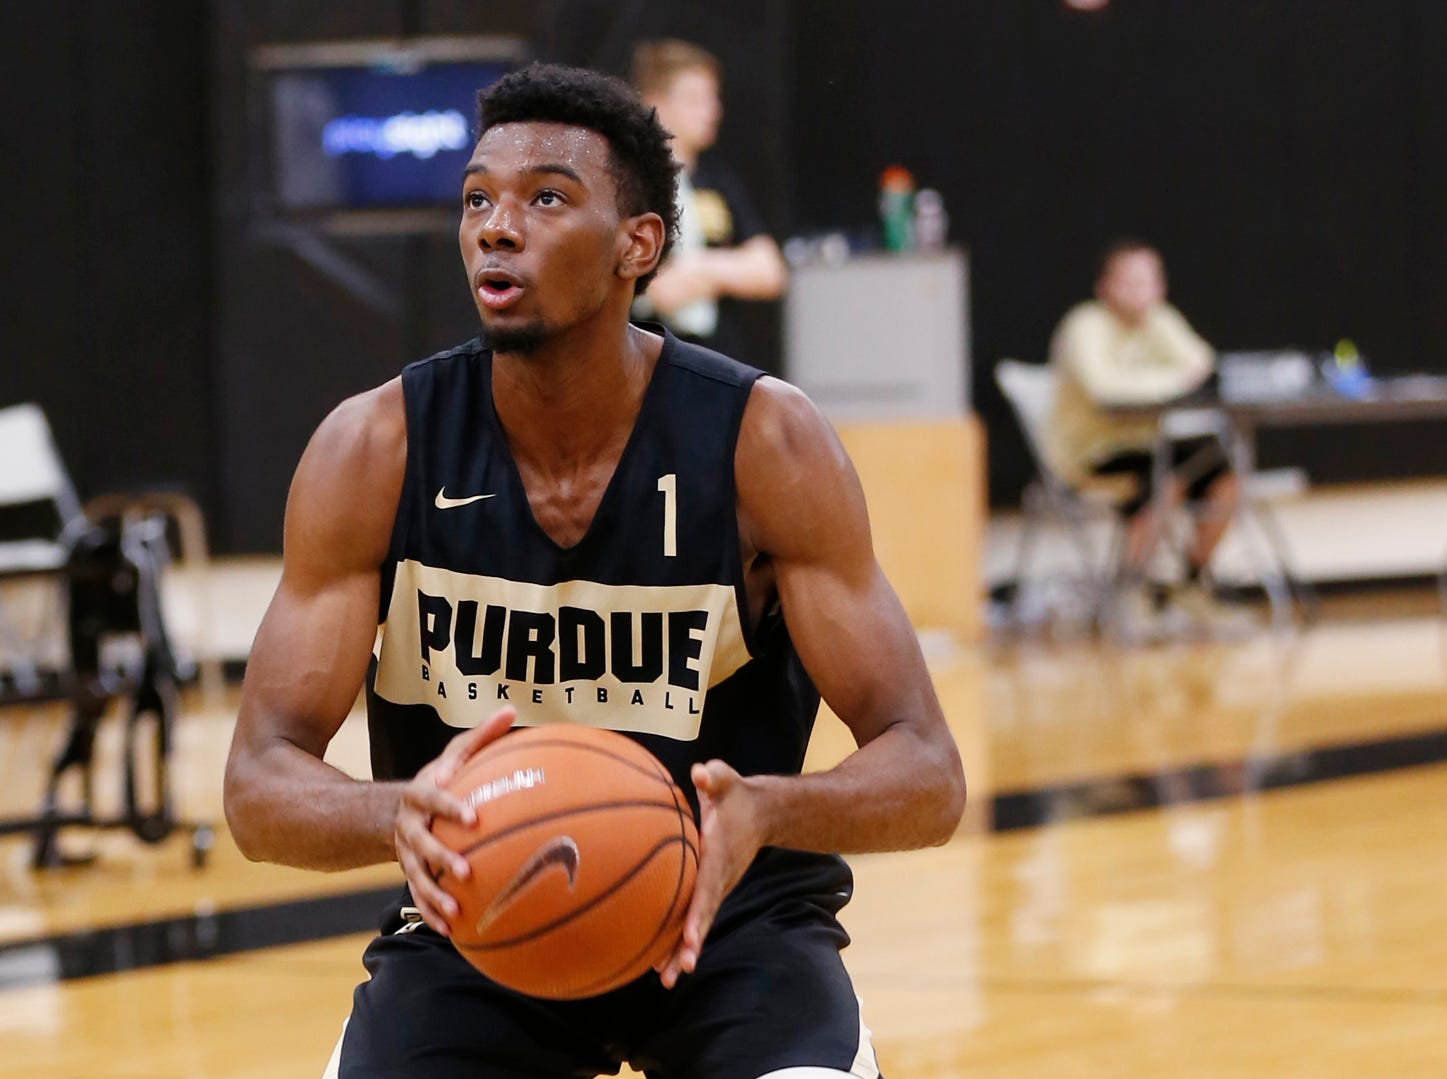 Aaron Wheeler runs a shot fake drill during the first official practice of the season for Purdue men's basketball Tuesday, September 25, 2018, at Cardinal Court in Mackey Arena.